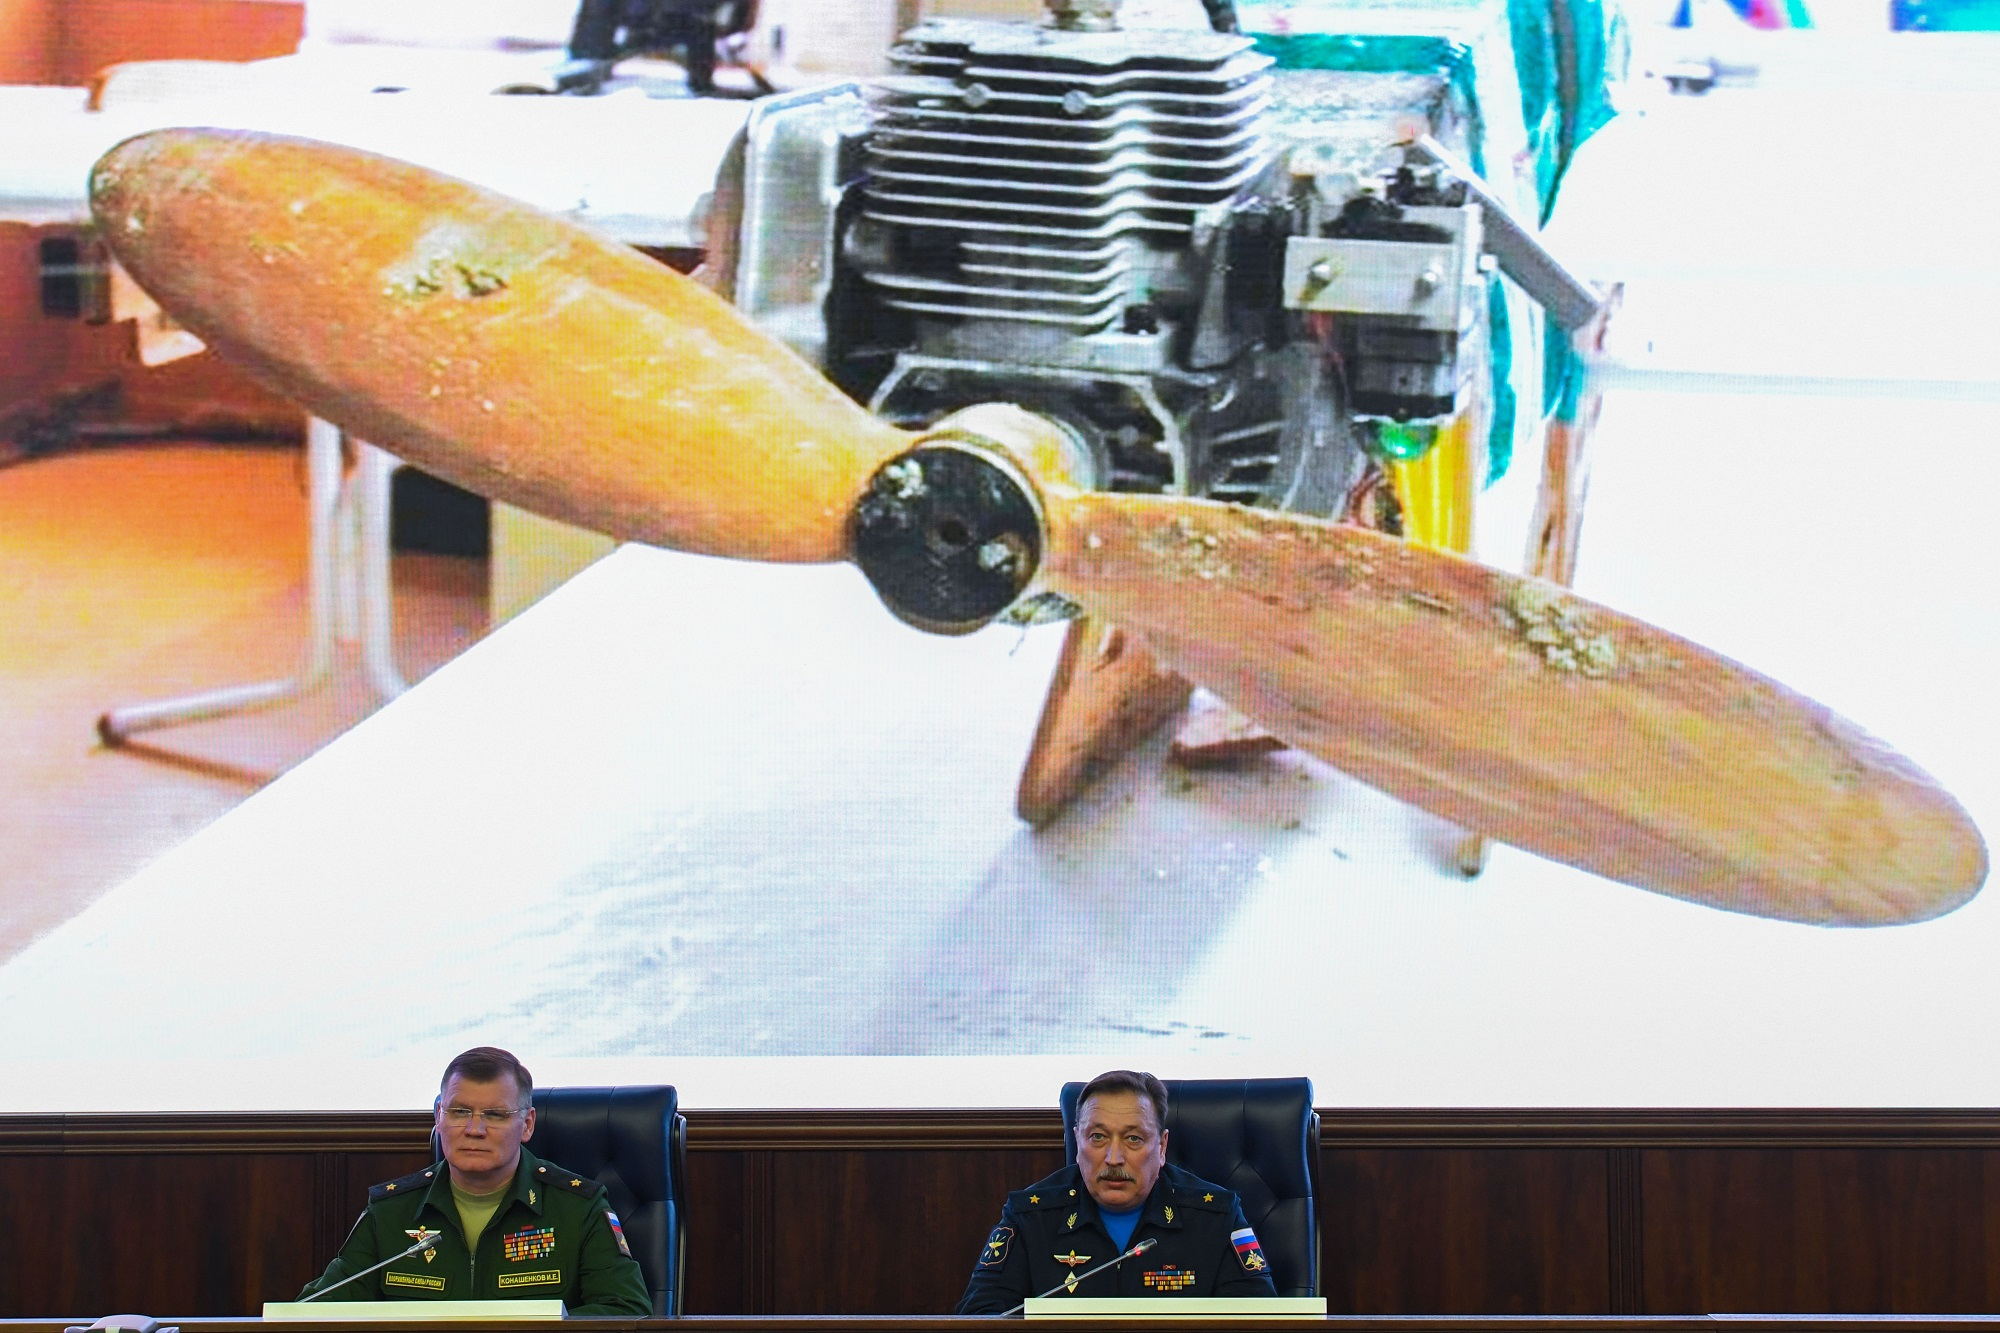 Russia's Defence Ministry spokesman Igor Konashenkov, left, and Maj. Gen. Alexander Novikov, head of the Russian General Staff's department for the development of UAVs, attend a briefing on recent drone attacks on Russia's bases in Syria, in the Russian Defence Ministry headquarters in Moscow on Jan. 11, 2018. (Kirill Kudryavtsev/AFP via Getty Images)